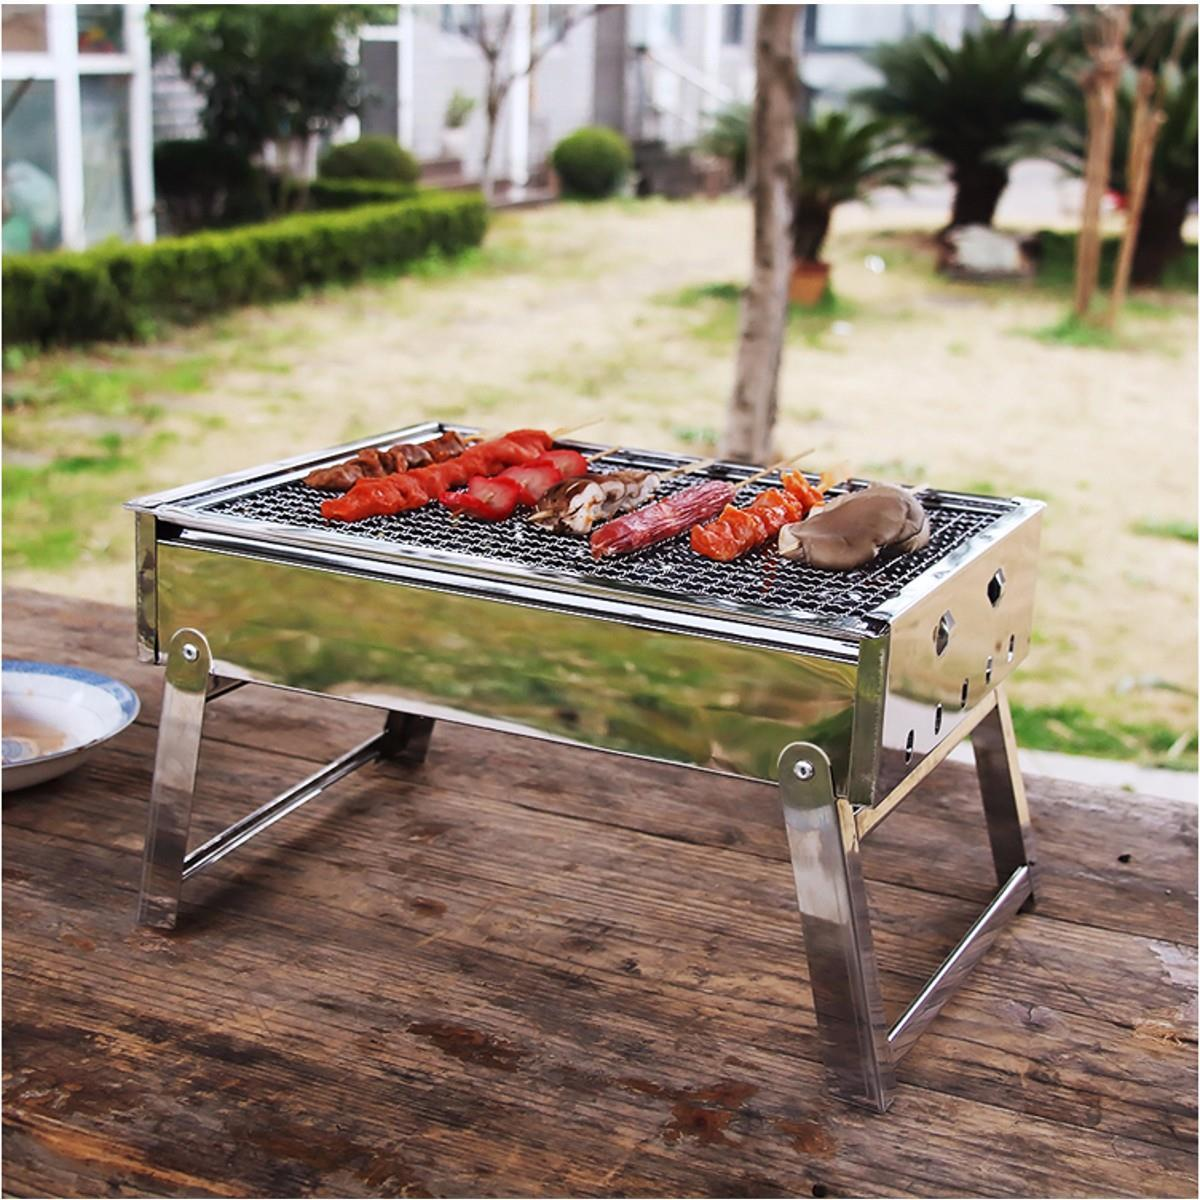 Portable Barbecue Cooking Set